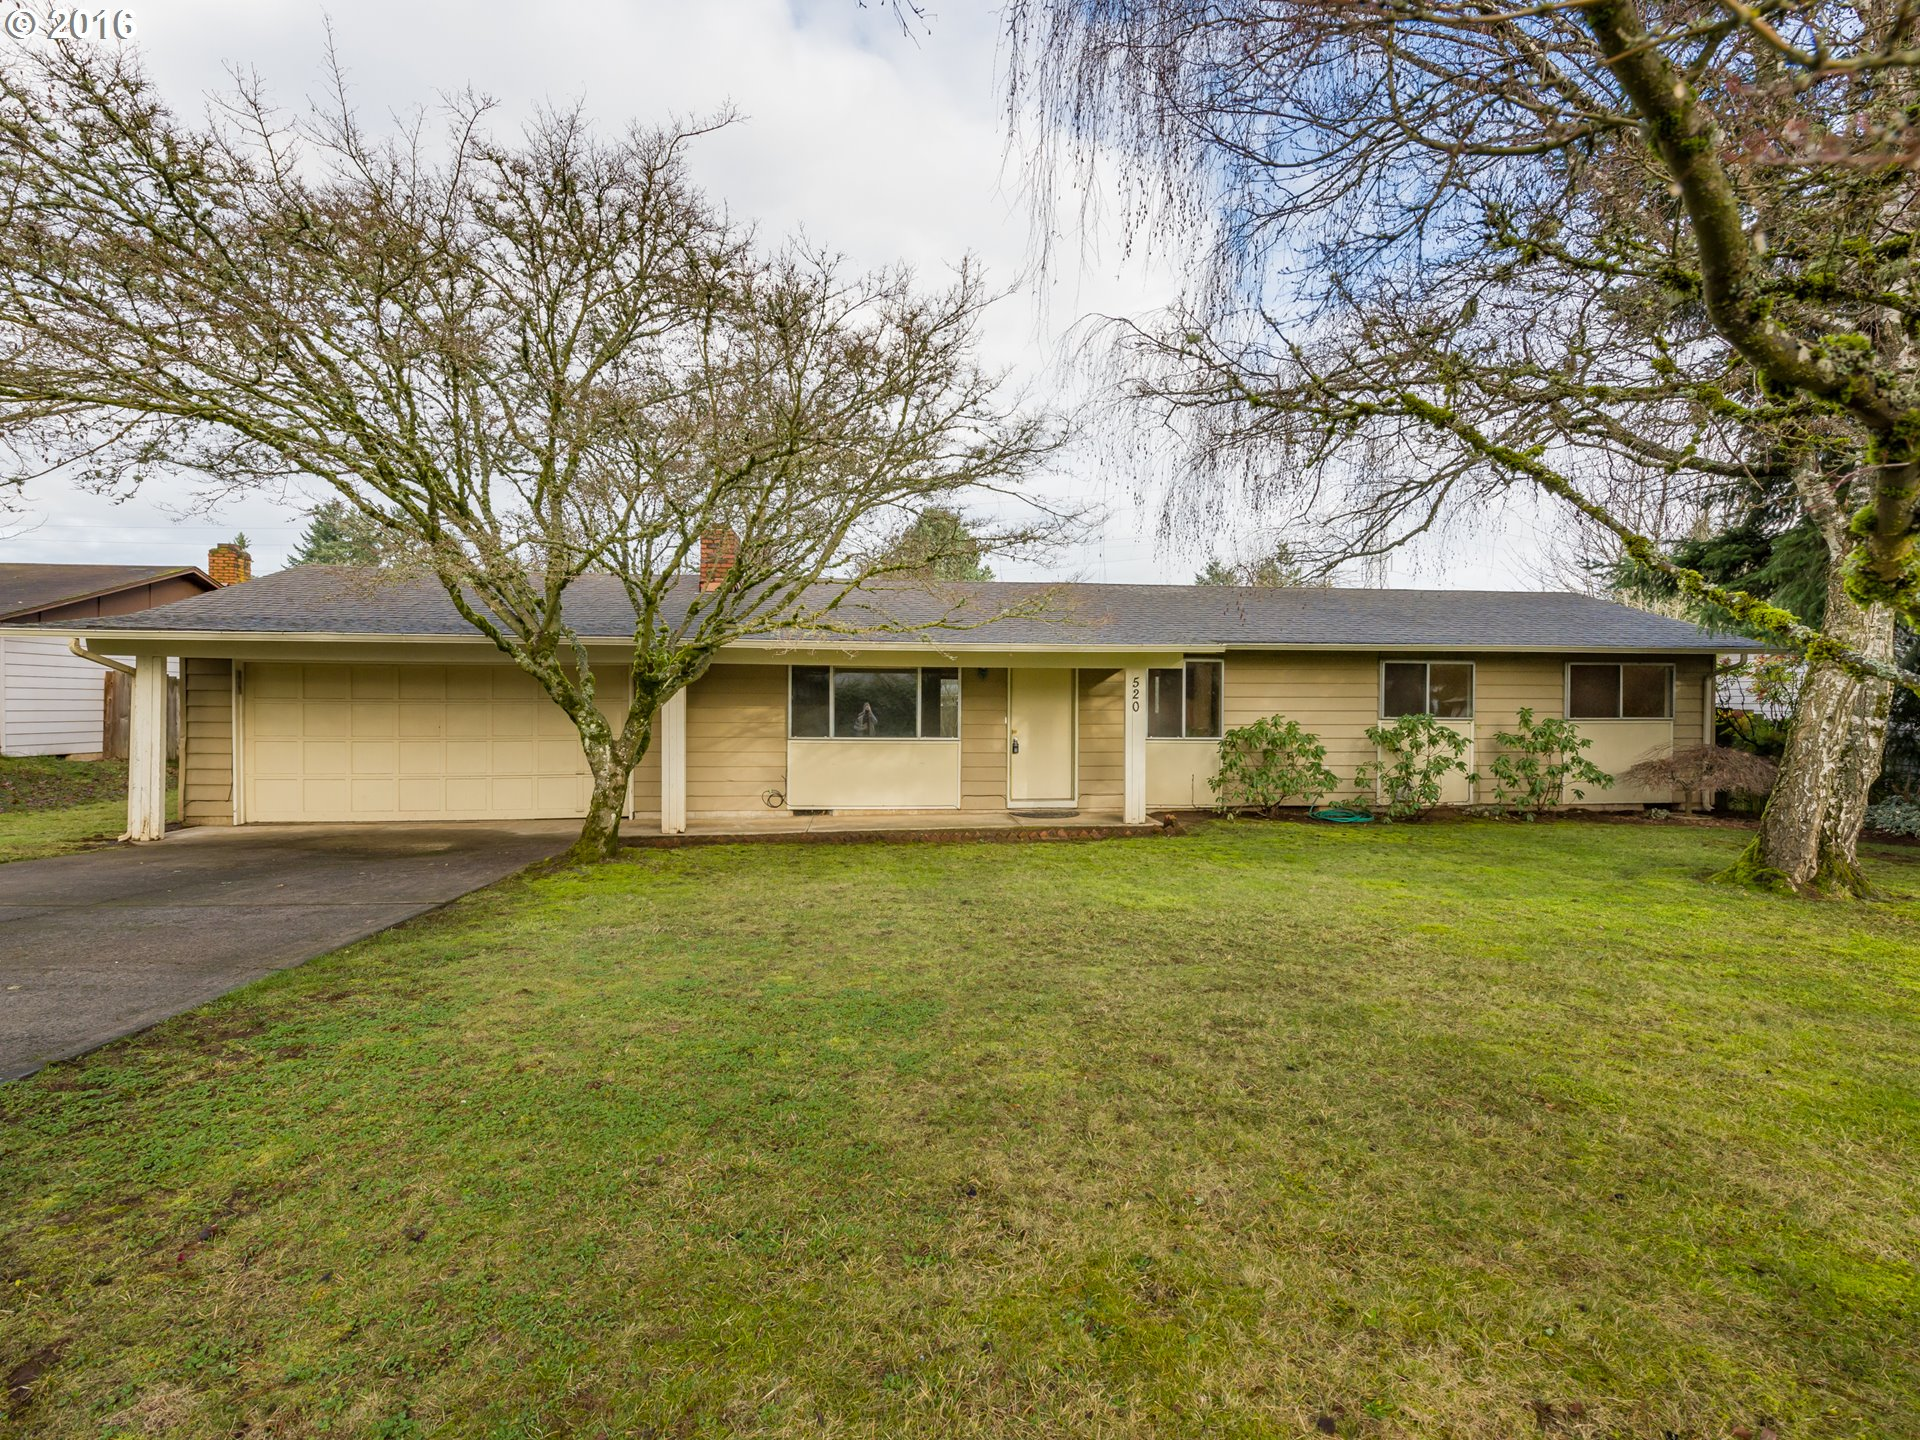 520 NW 54TH ST, Vancouver, WA 98663